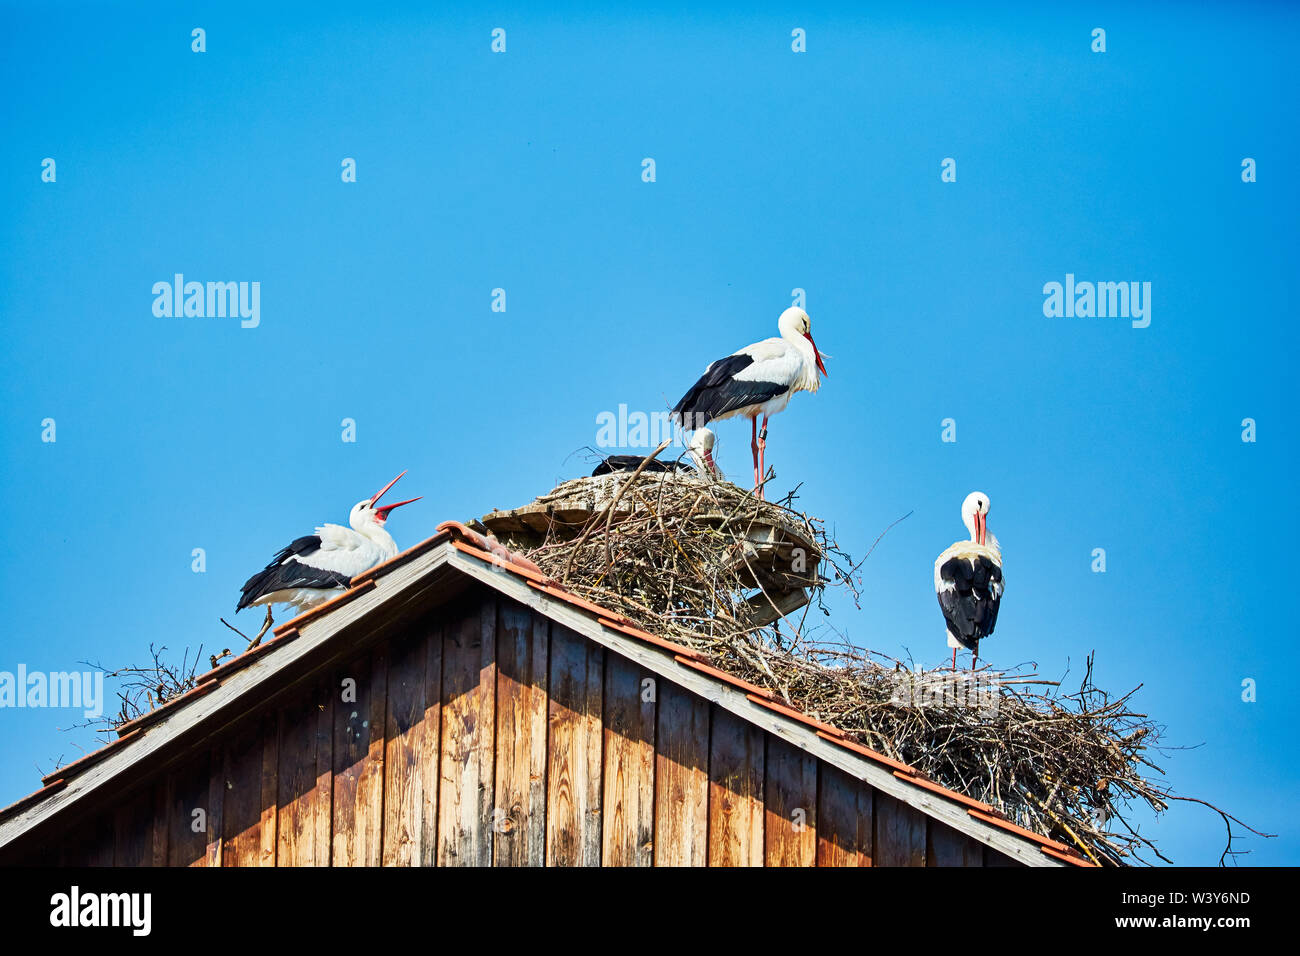 Stork nests with storks on a roof - Stock Image